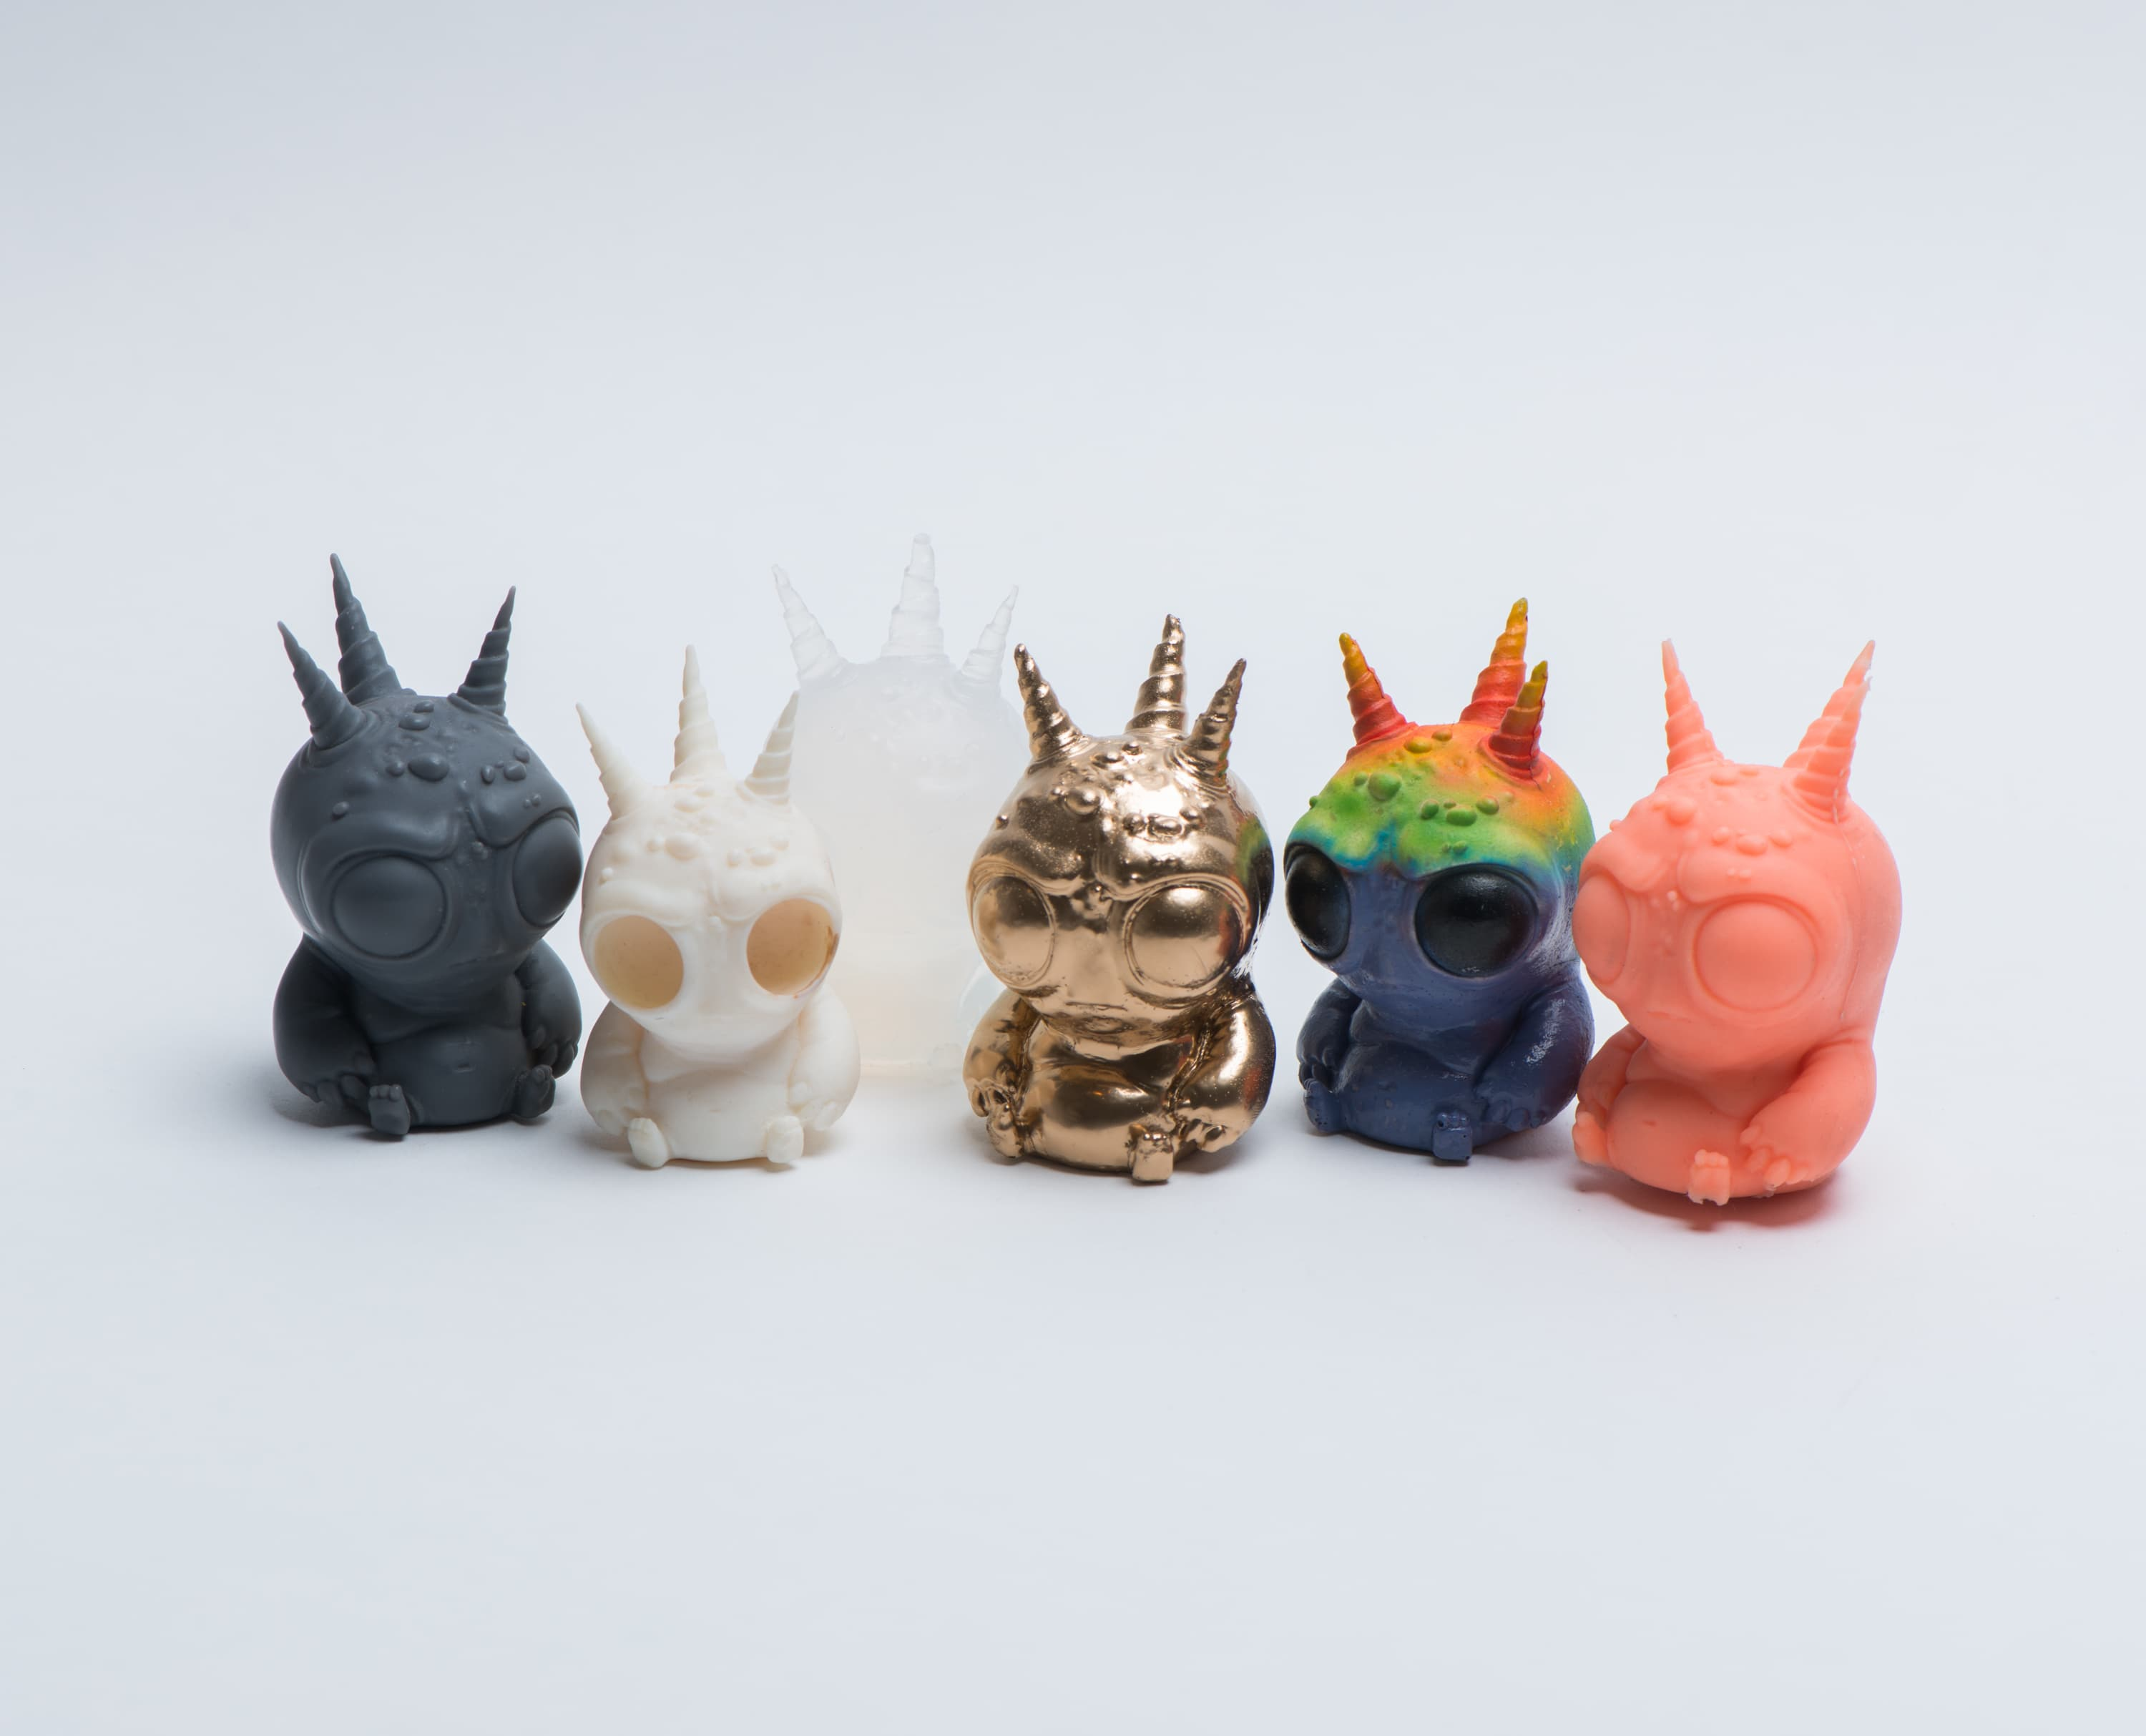 Miniature monsters 3D printed and painted